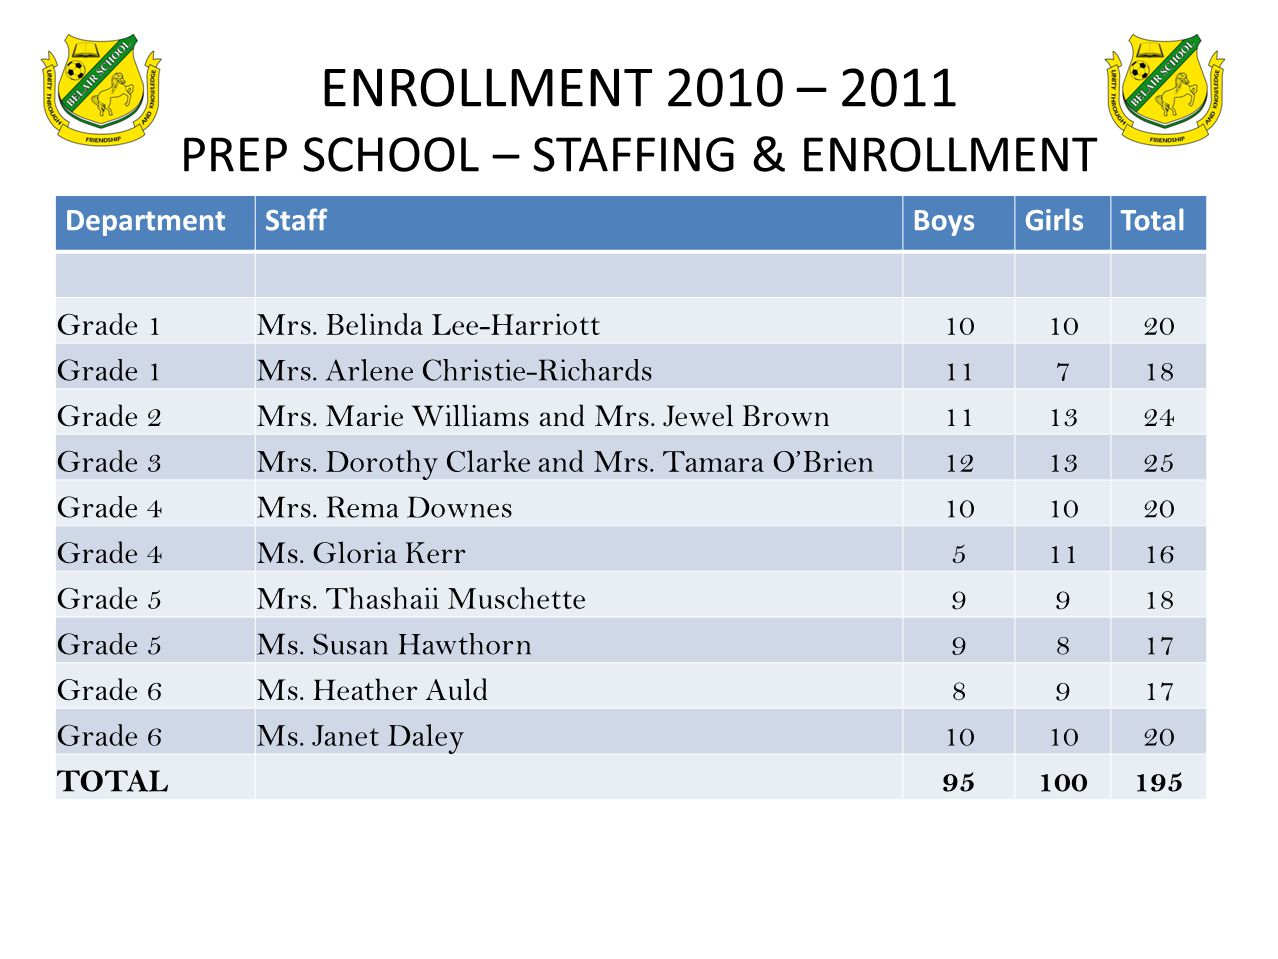 ENROLLMENT 2010 – 2011 PREP SCHOOL – STAFFING & ENROLLMENT